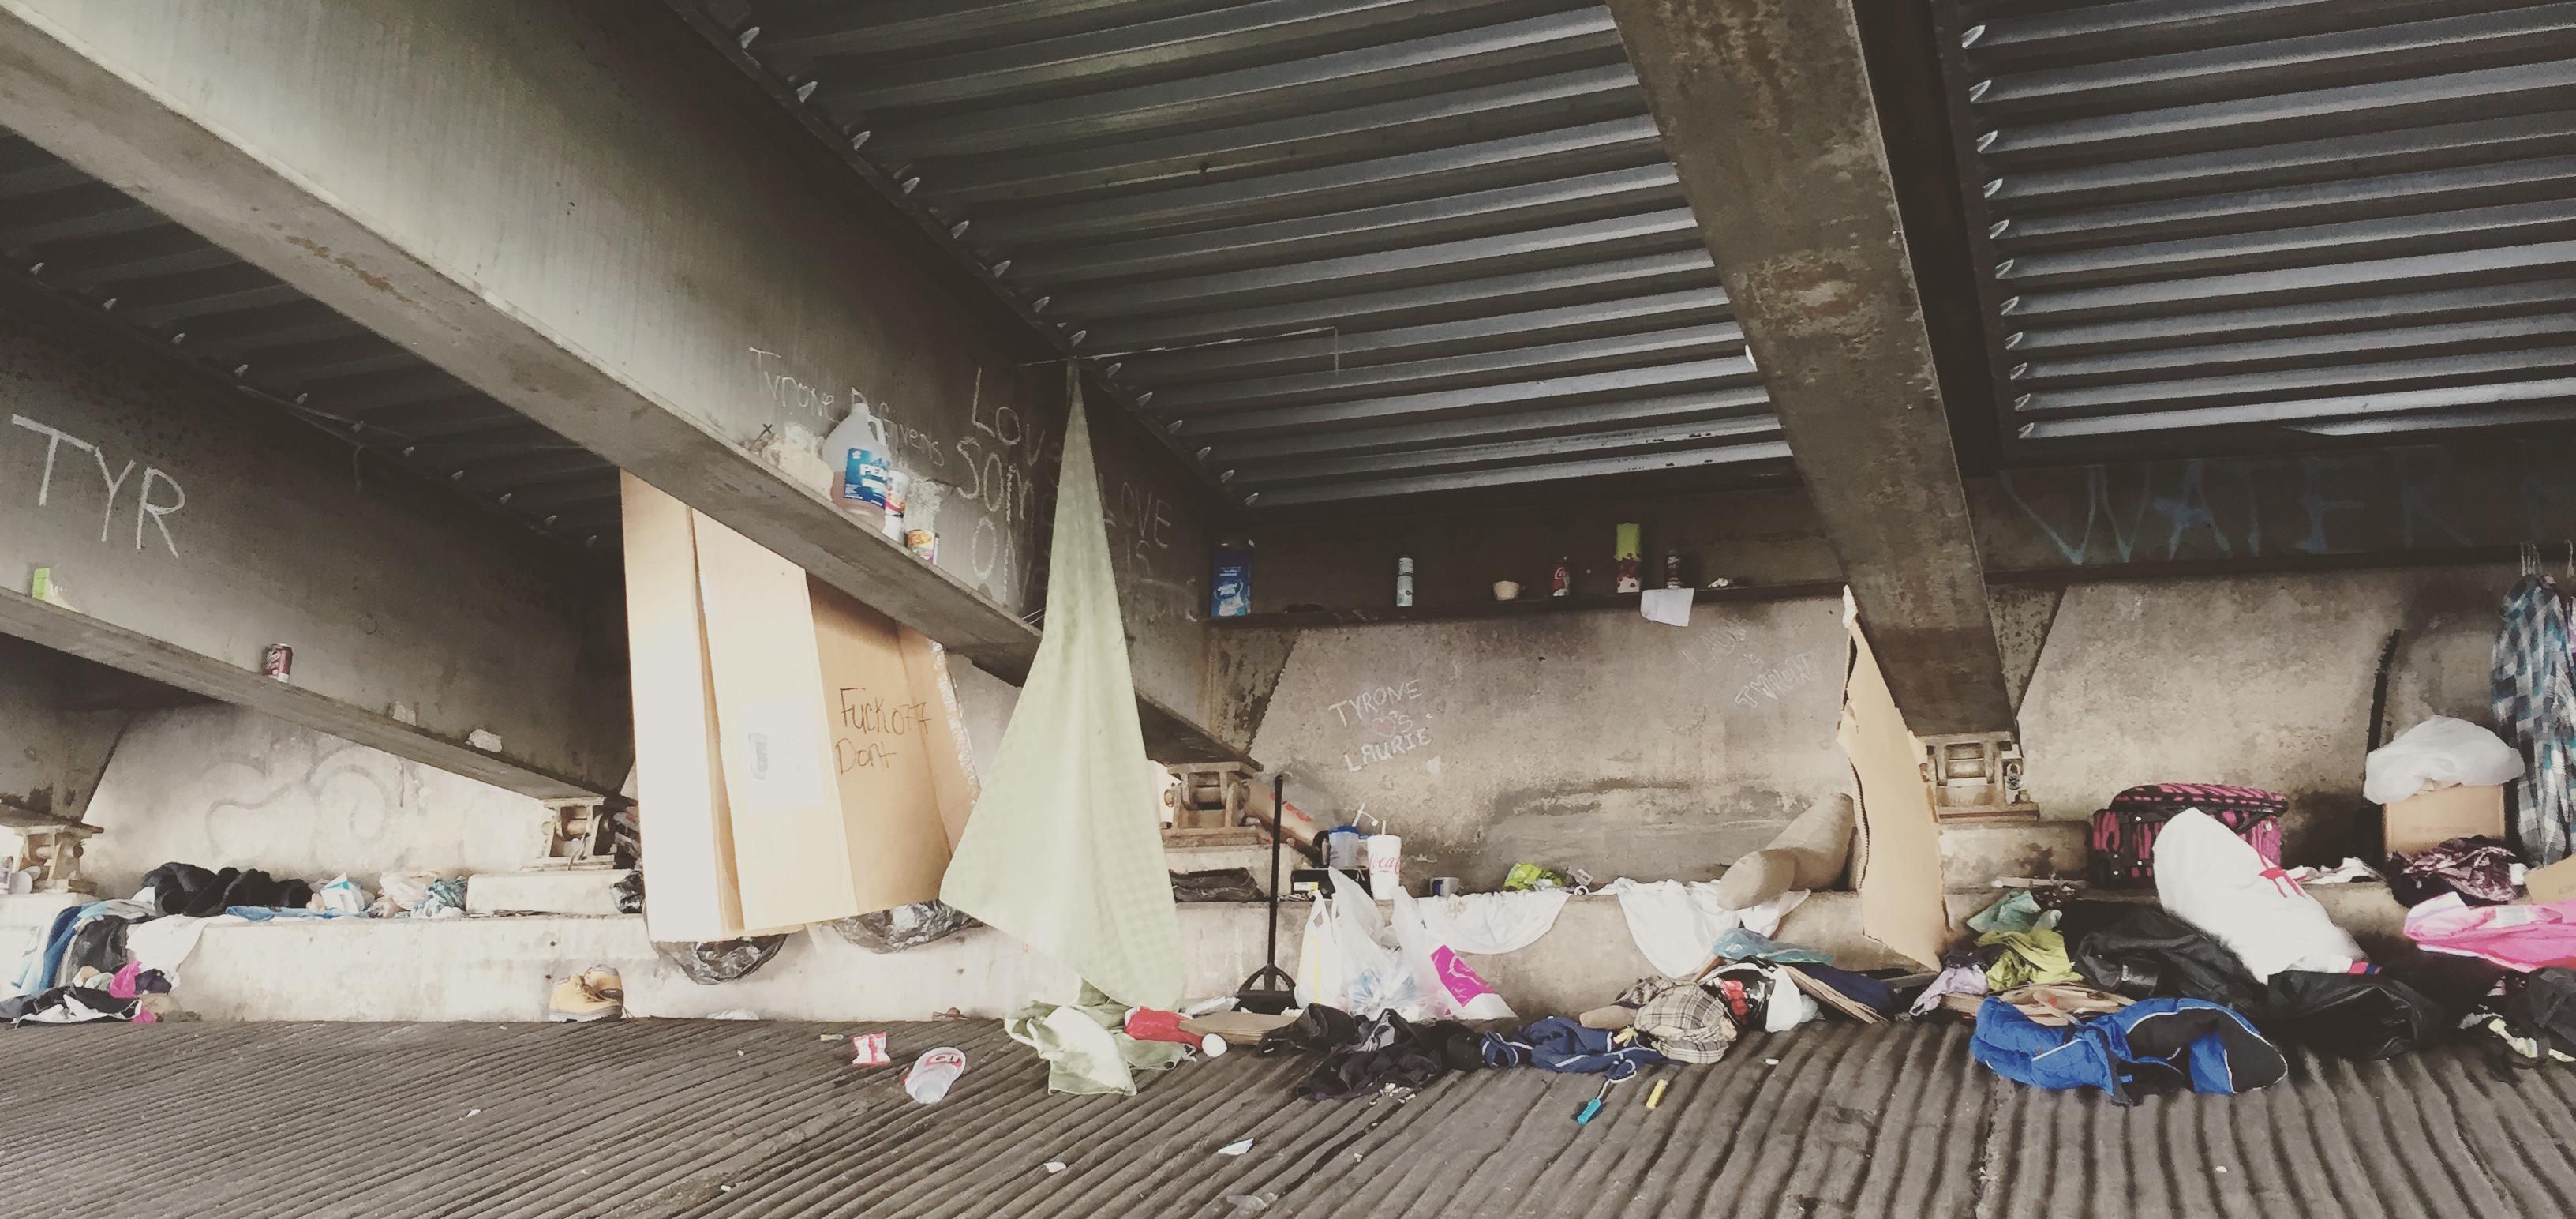 Homeless camp under the overpass